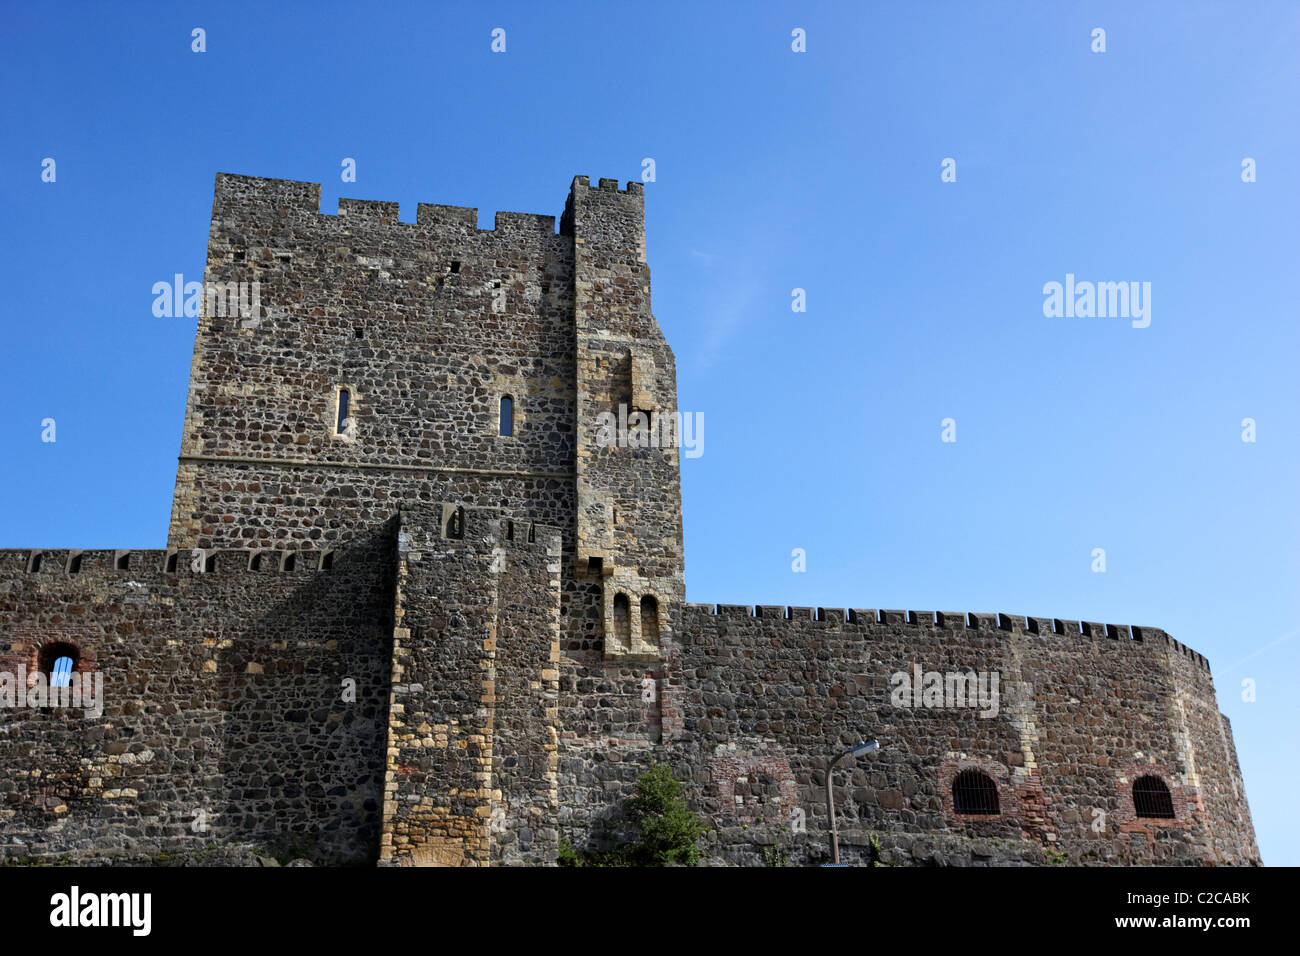 norman keep and walls of carrickfergus castle northern ireland - Stock Image